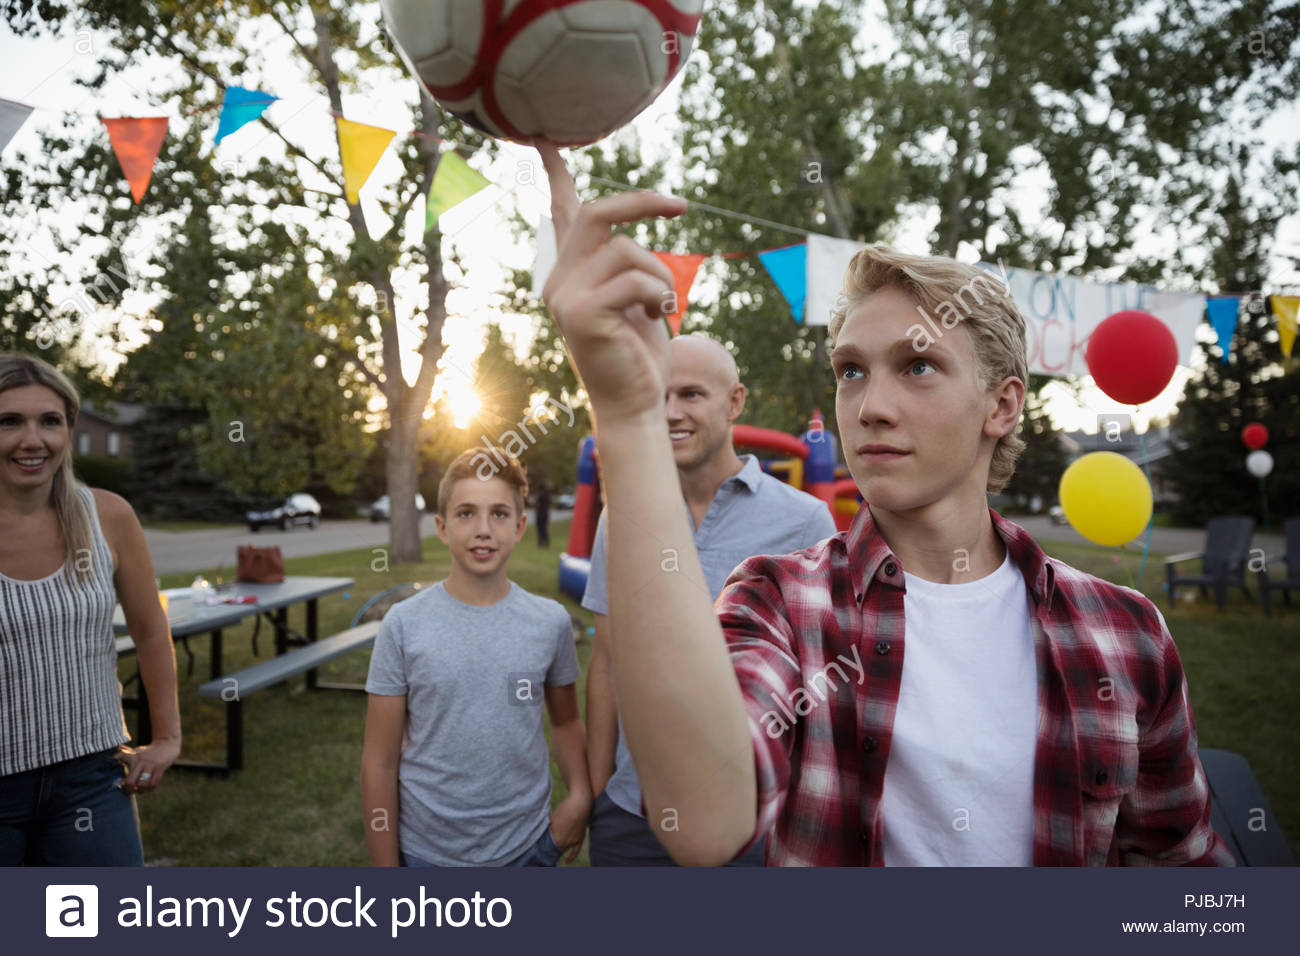 Boy balancing soccer ball on finger at summer neighborhood block party in park - Stock Image